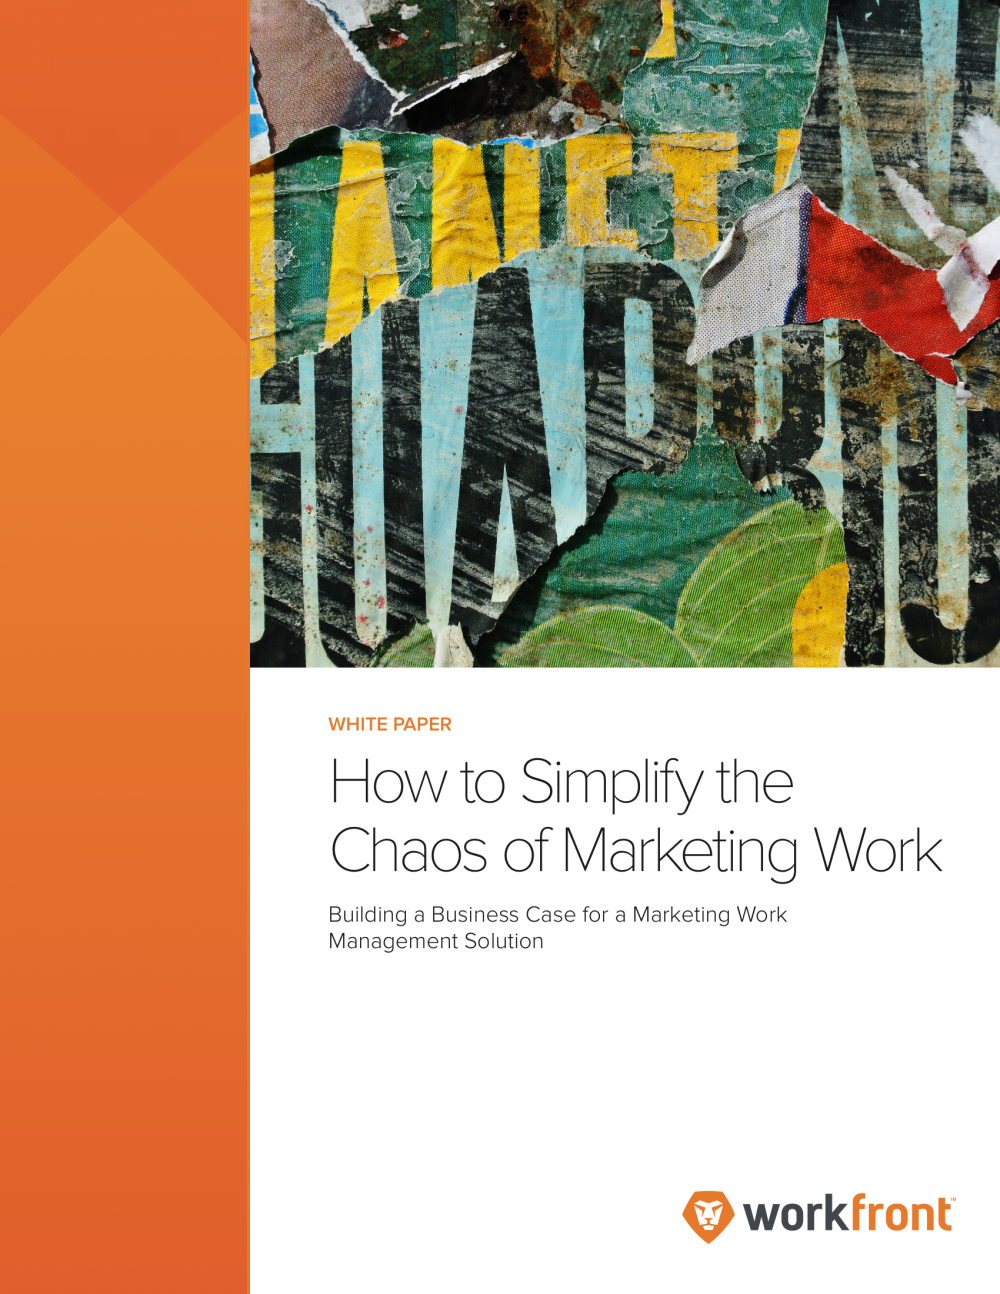 How to Simplify the Chaos of Marketing Work